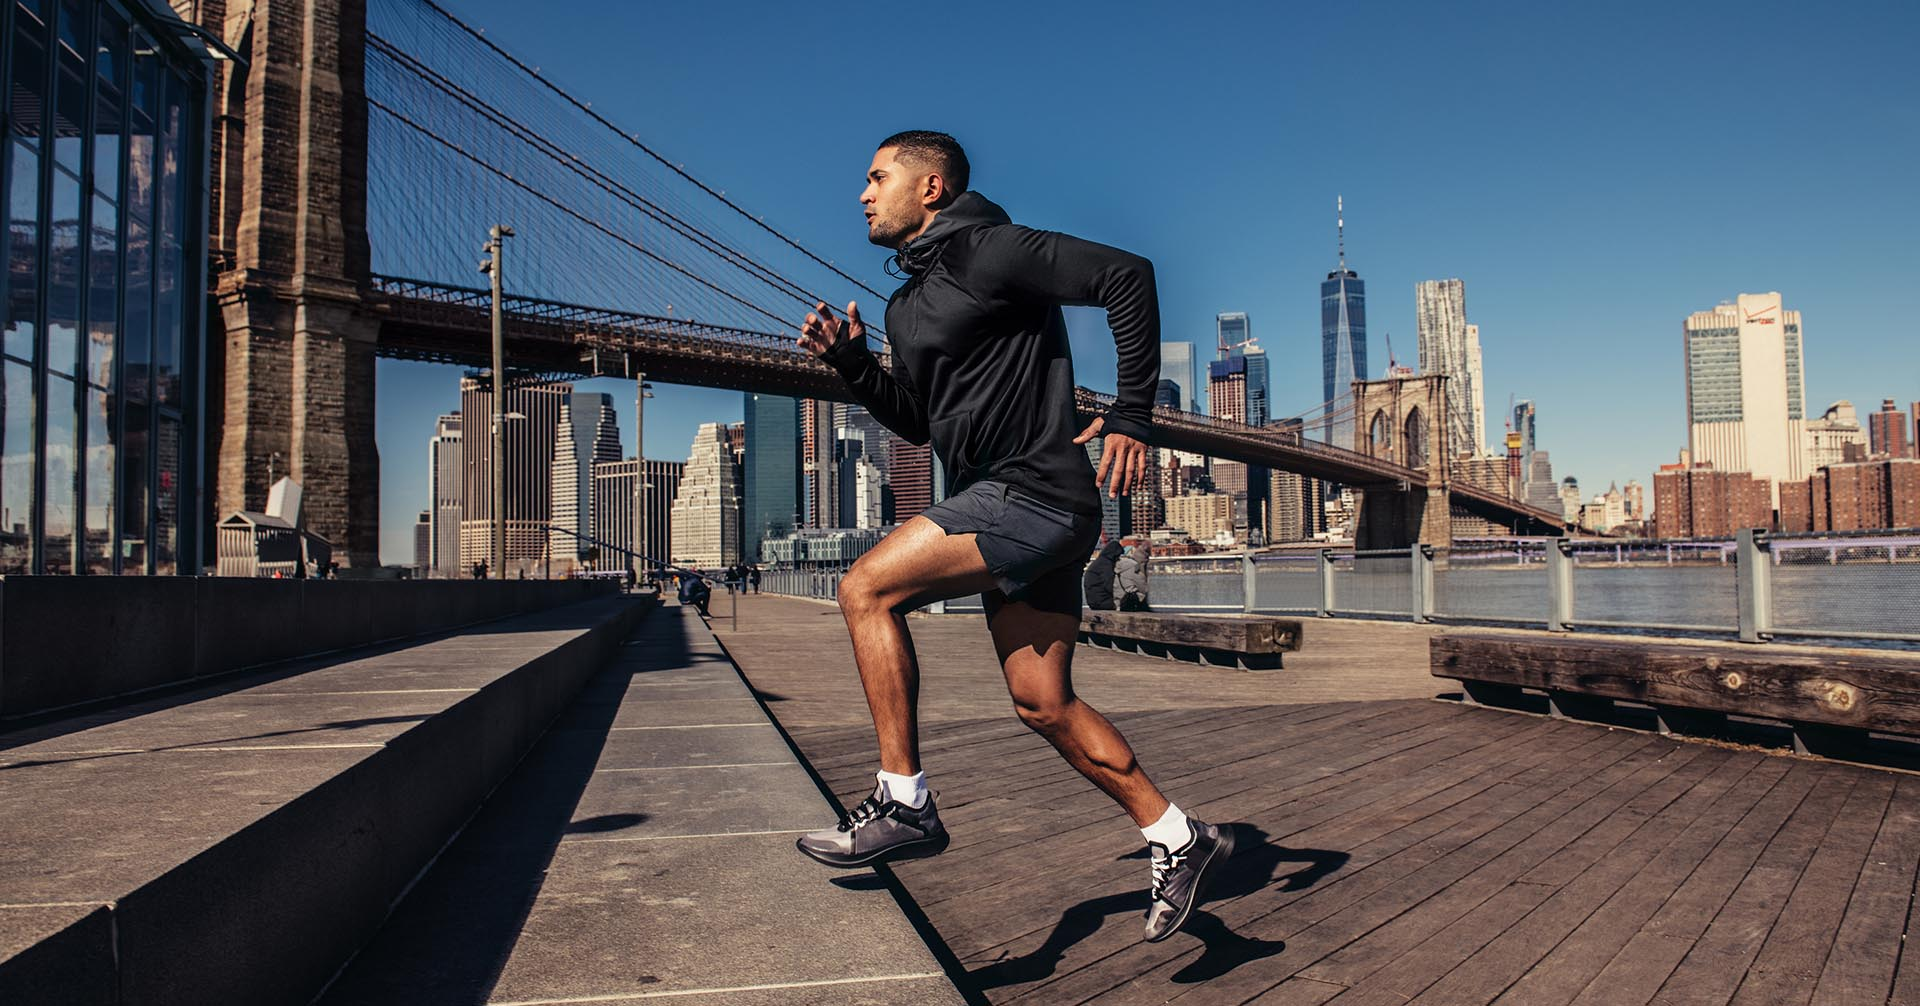 Athelte man running in New York City street wearing sport clothes.